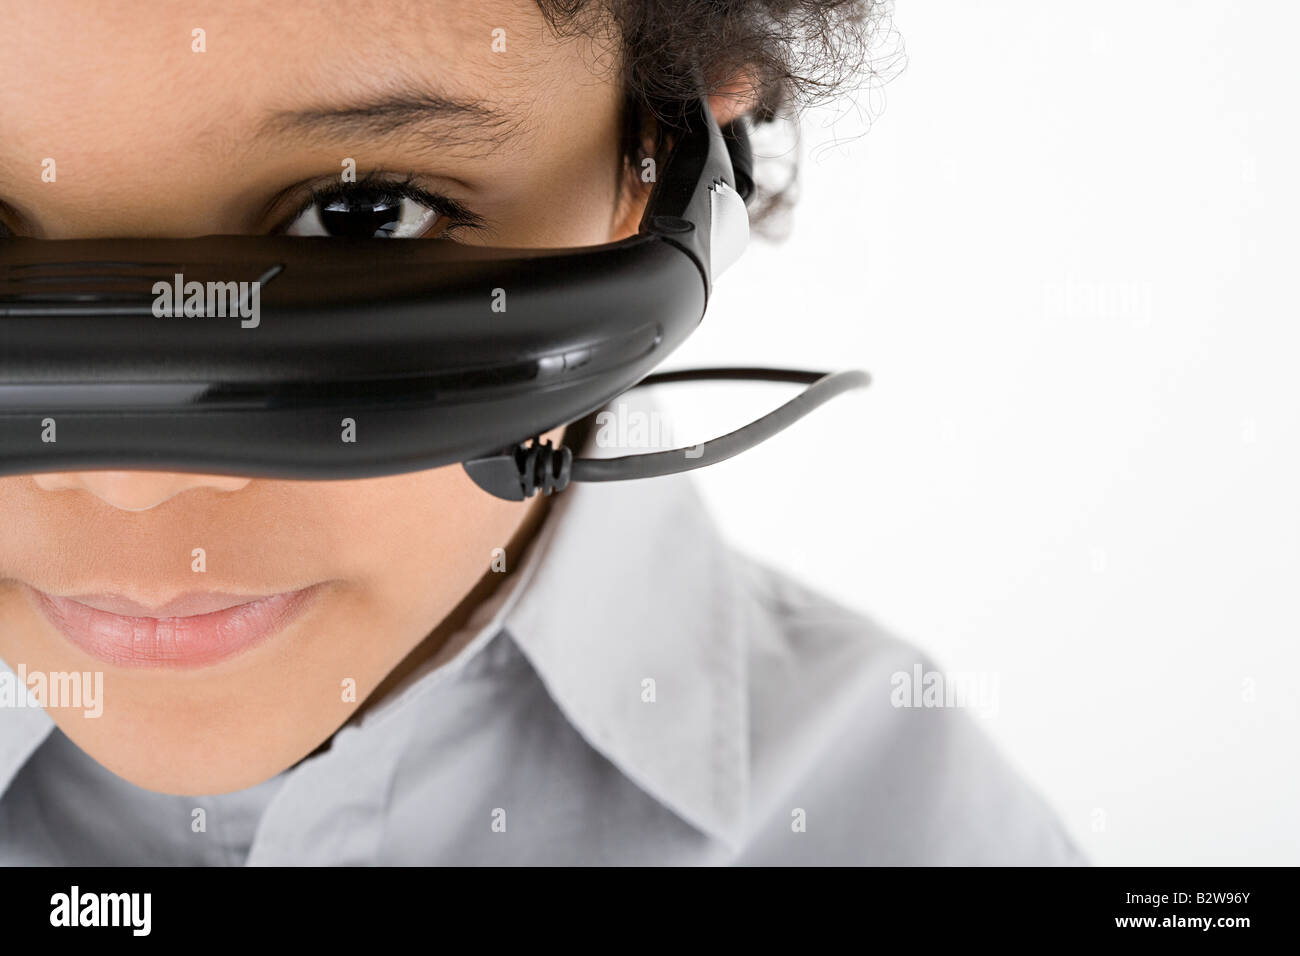 Boy wearing virtual reality headset - Stock Image